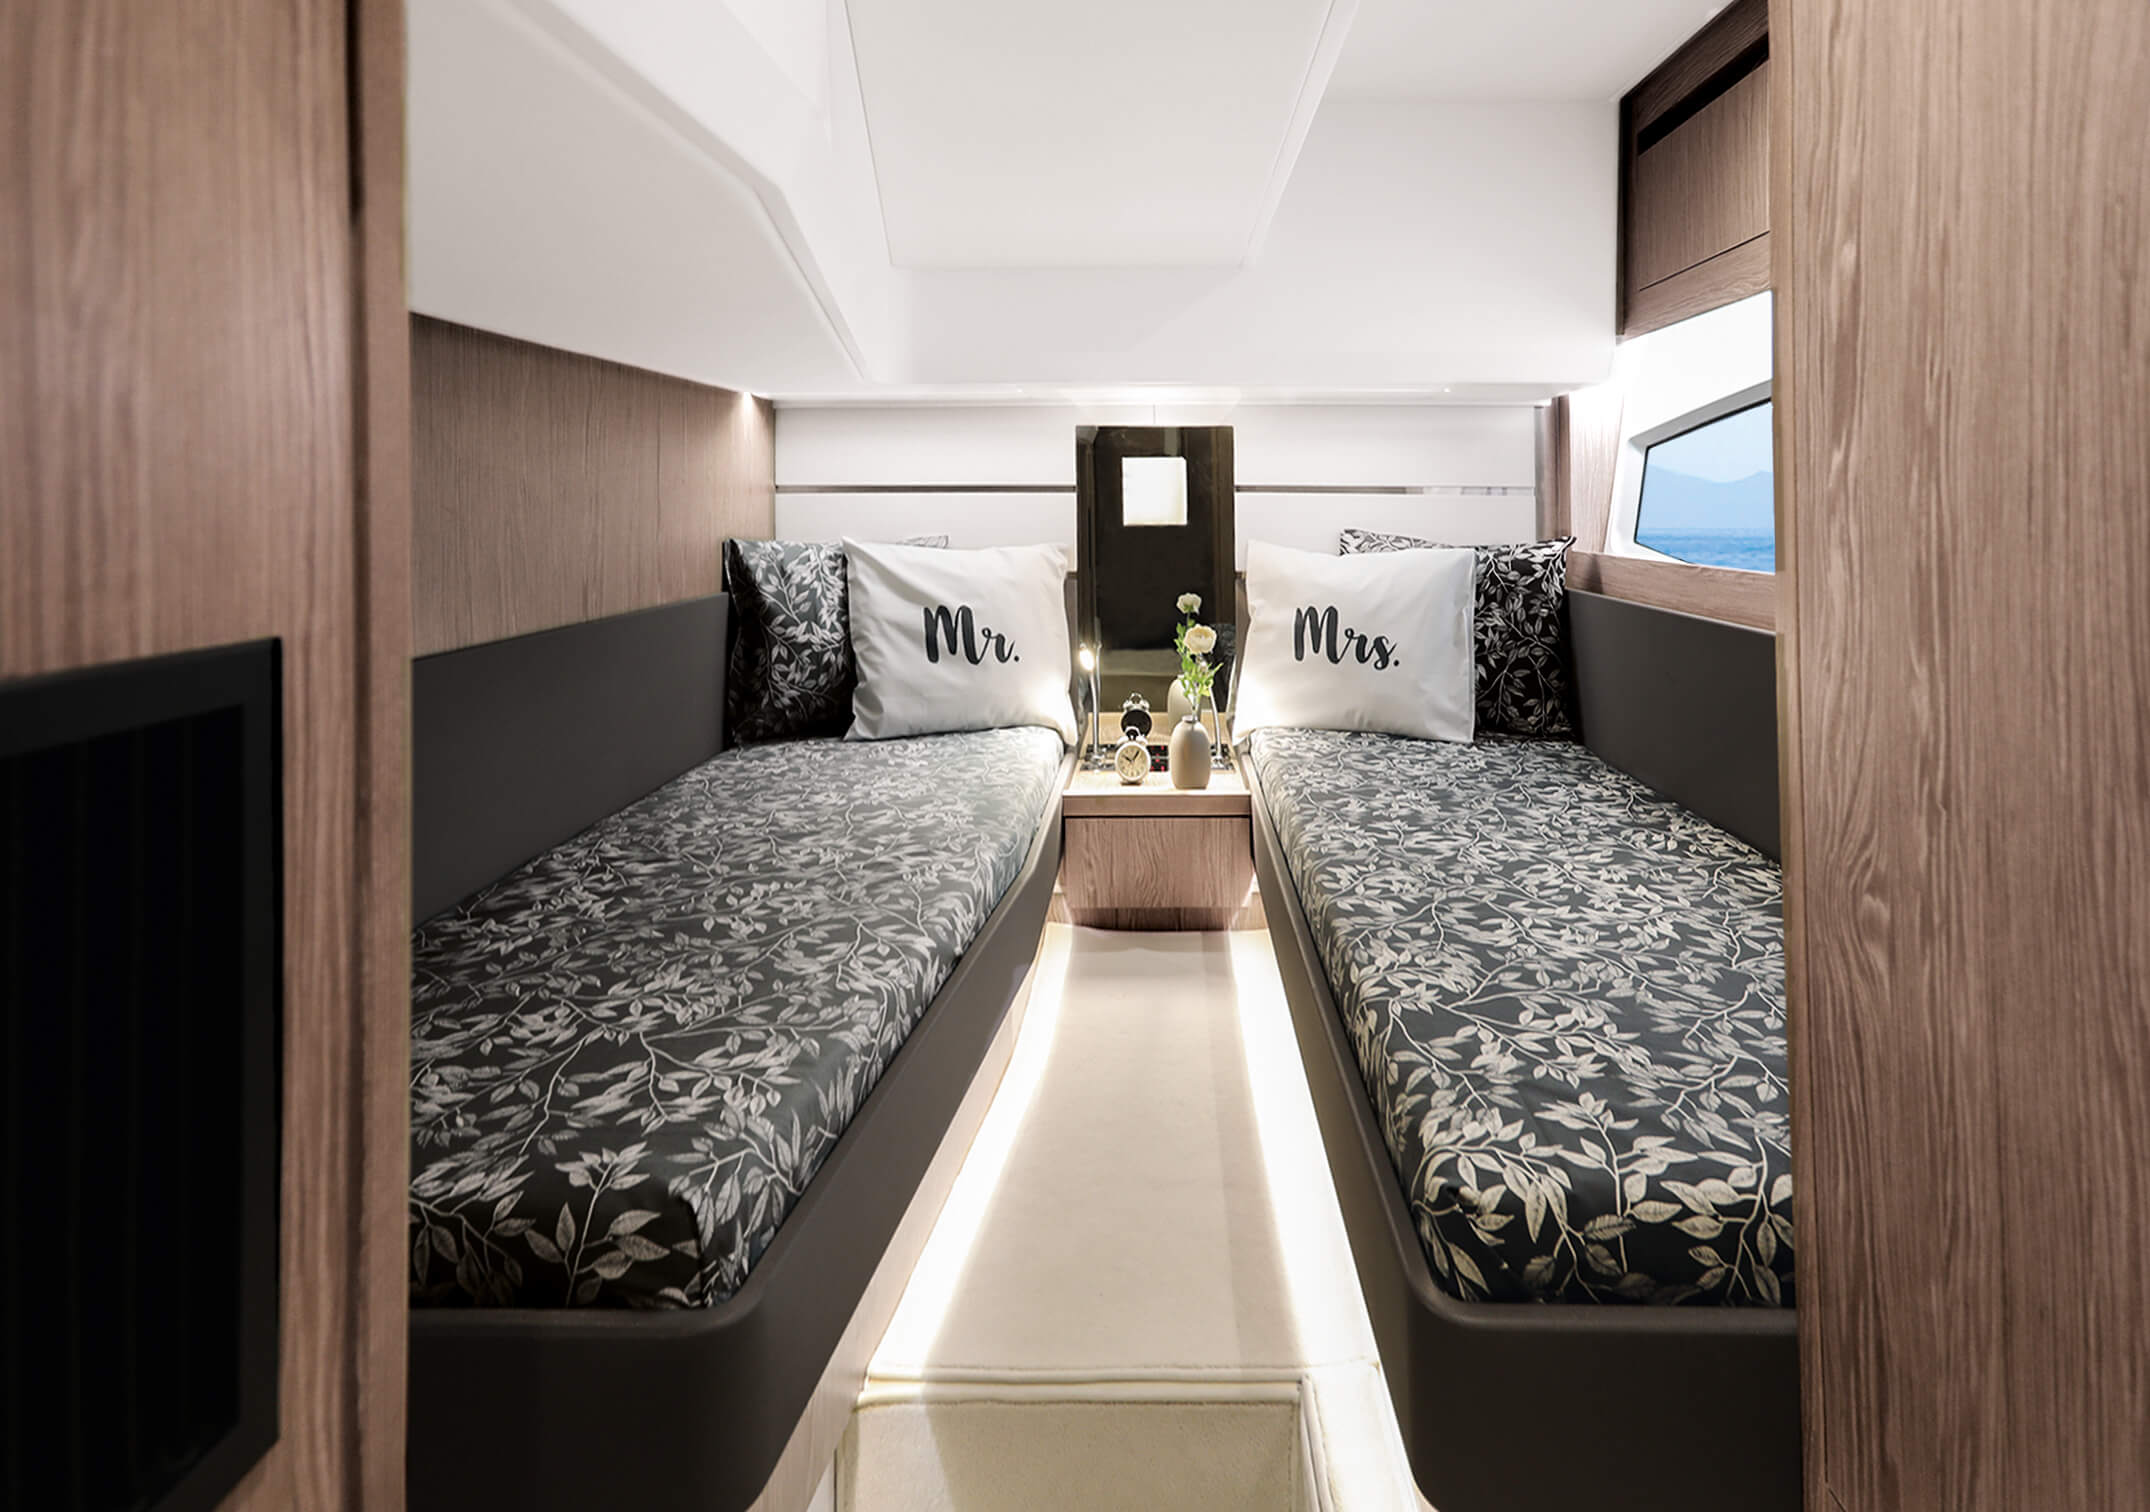 Sealine F430 Intérieur vue | Portside cabin with twin berth, wardrobe, bedside tables and direct access to heads. | Sealine